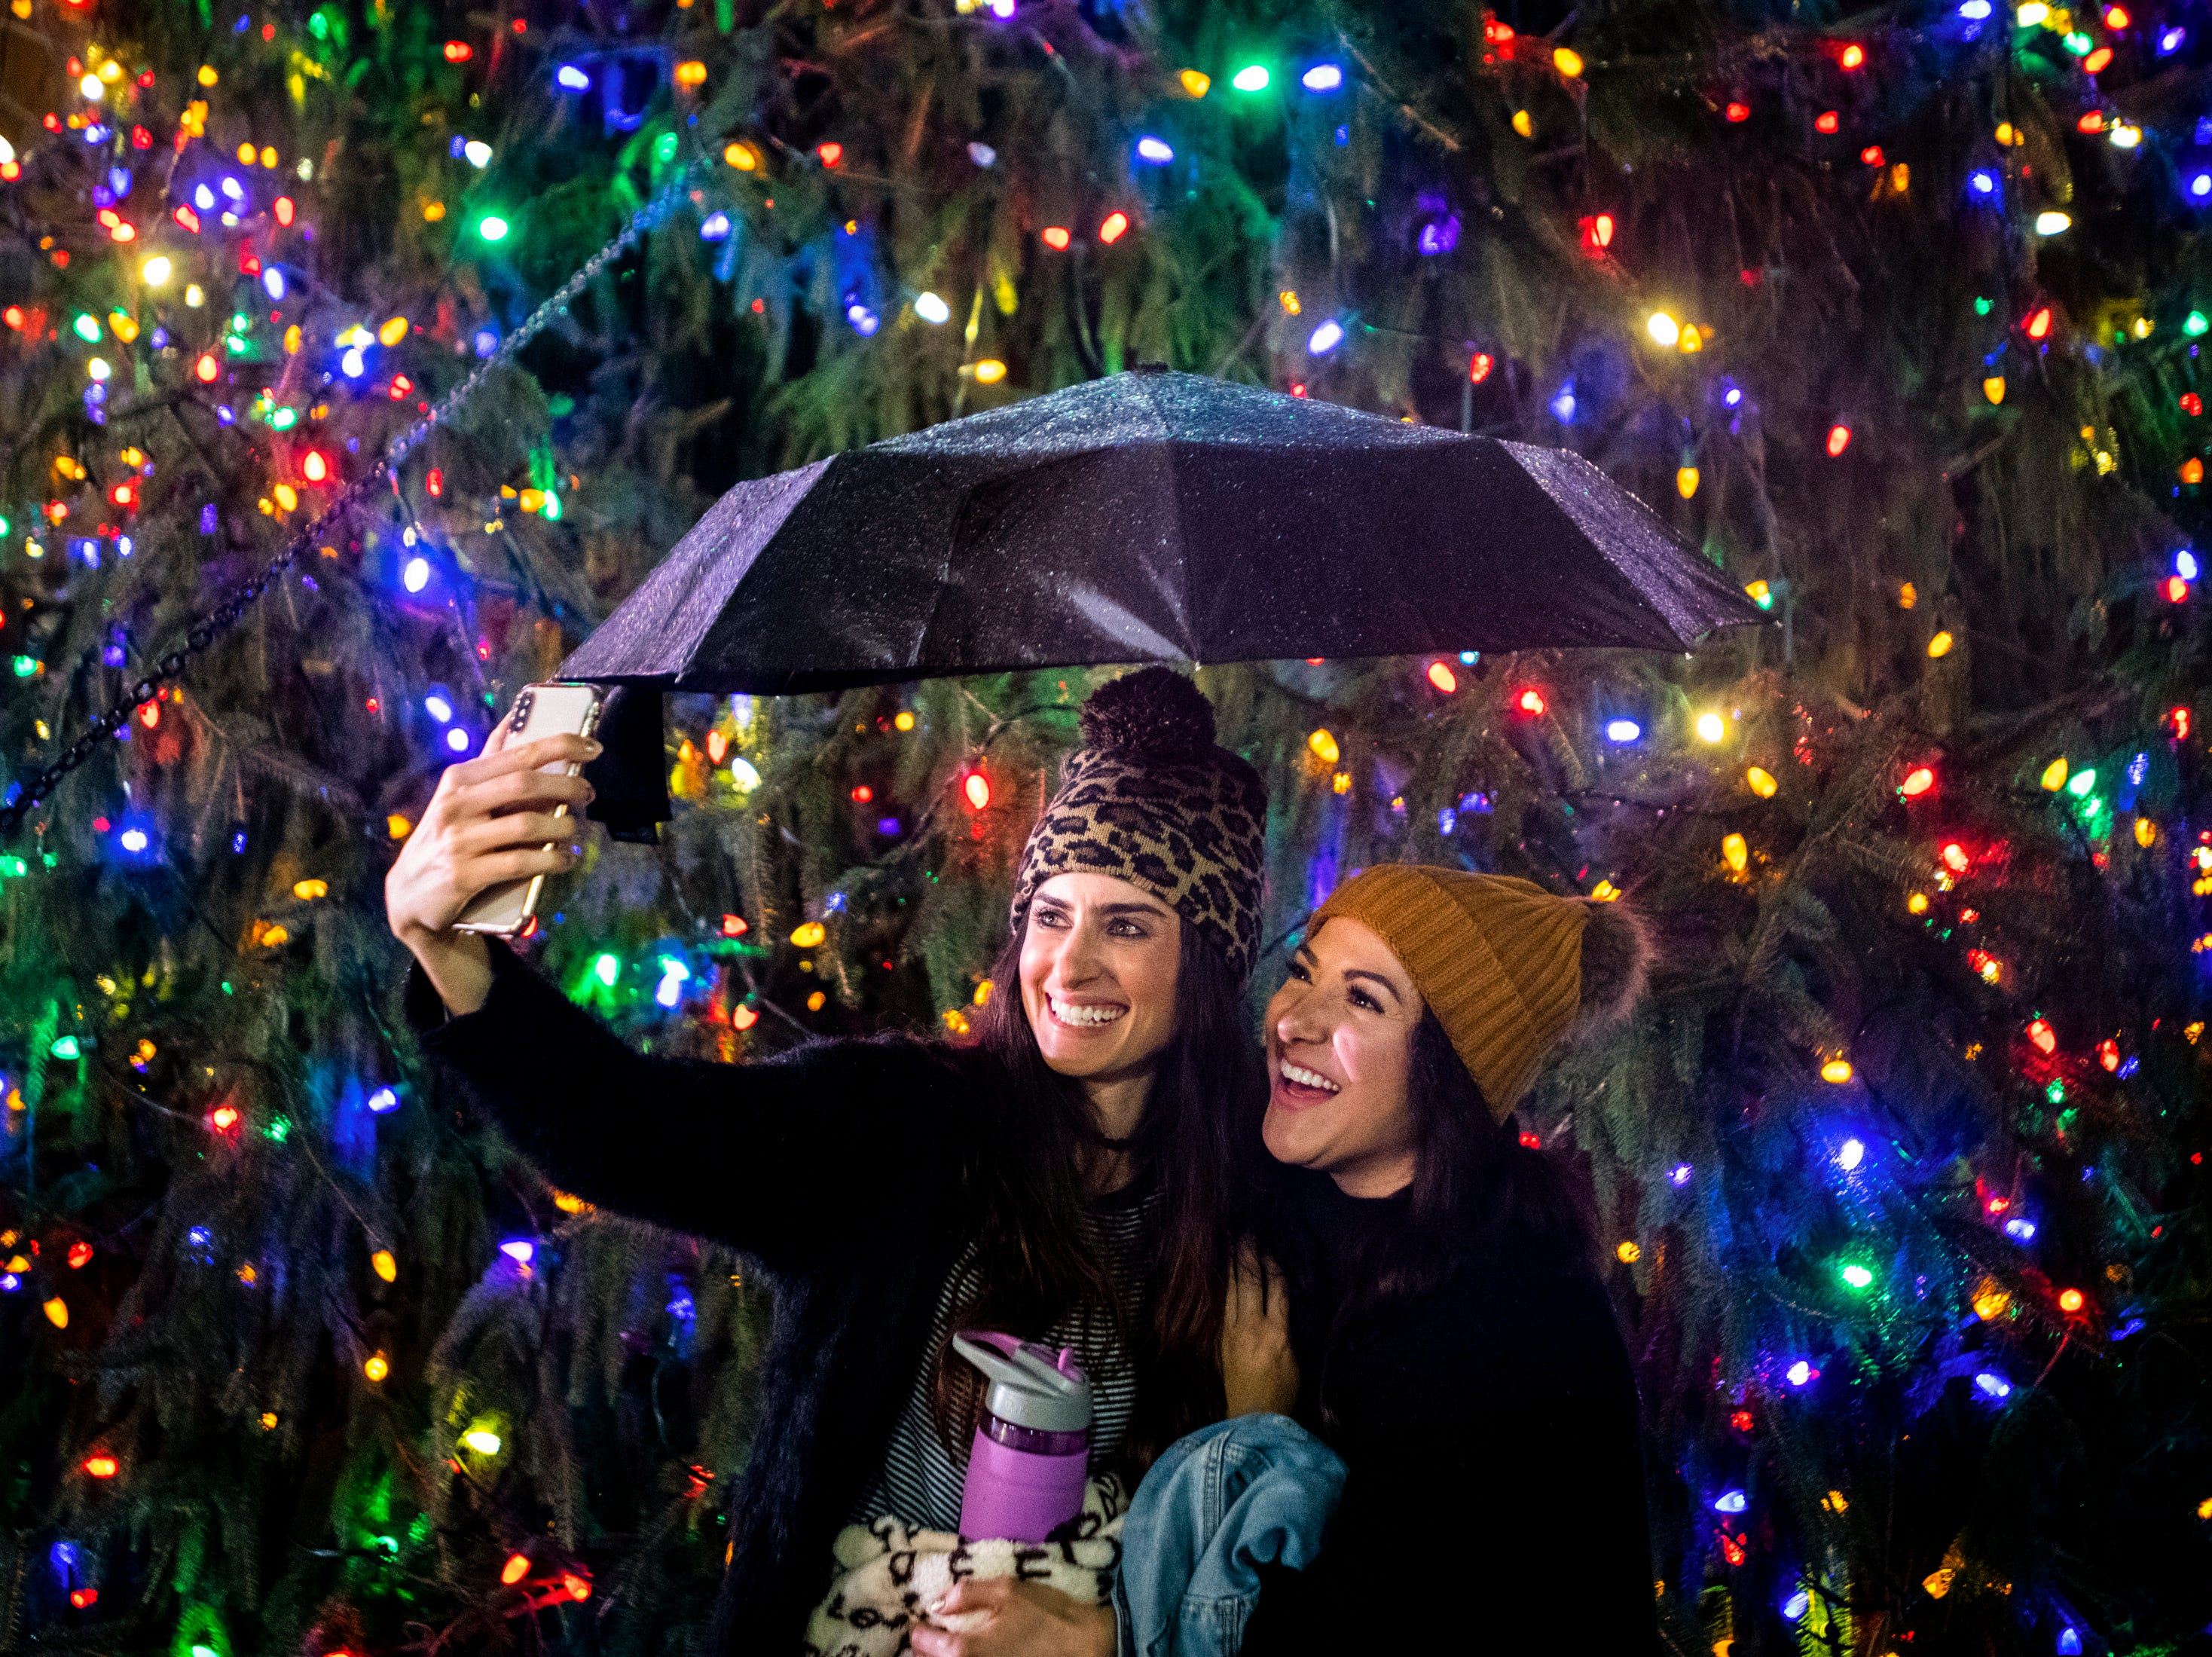 Ashley Scovil, left, and Grethel Icabalceta, right, both of Nashville, take a picture in front of the tree during the Metro Nashville Christmas Tree Lighting event at Public Square Park in Nashville, Tenn., Friday, Nov. 30, 2018.